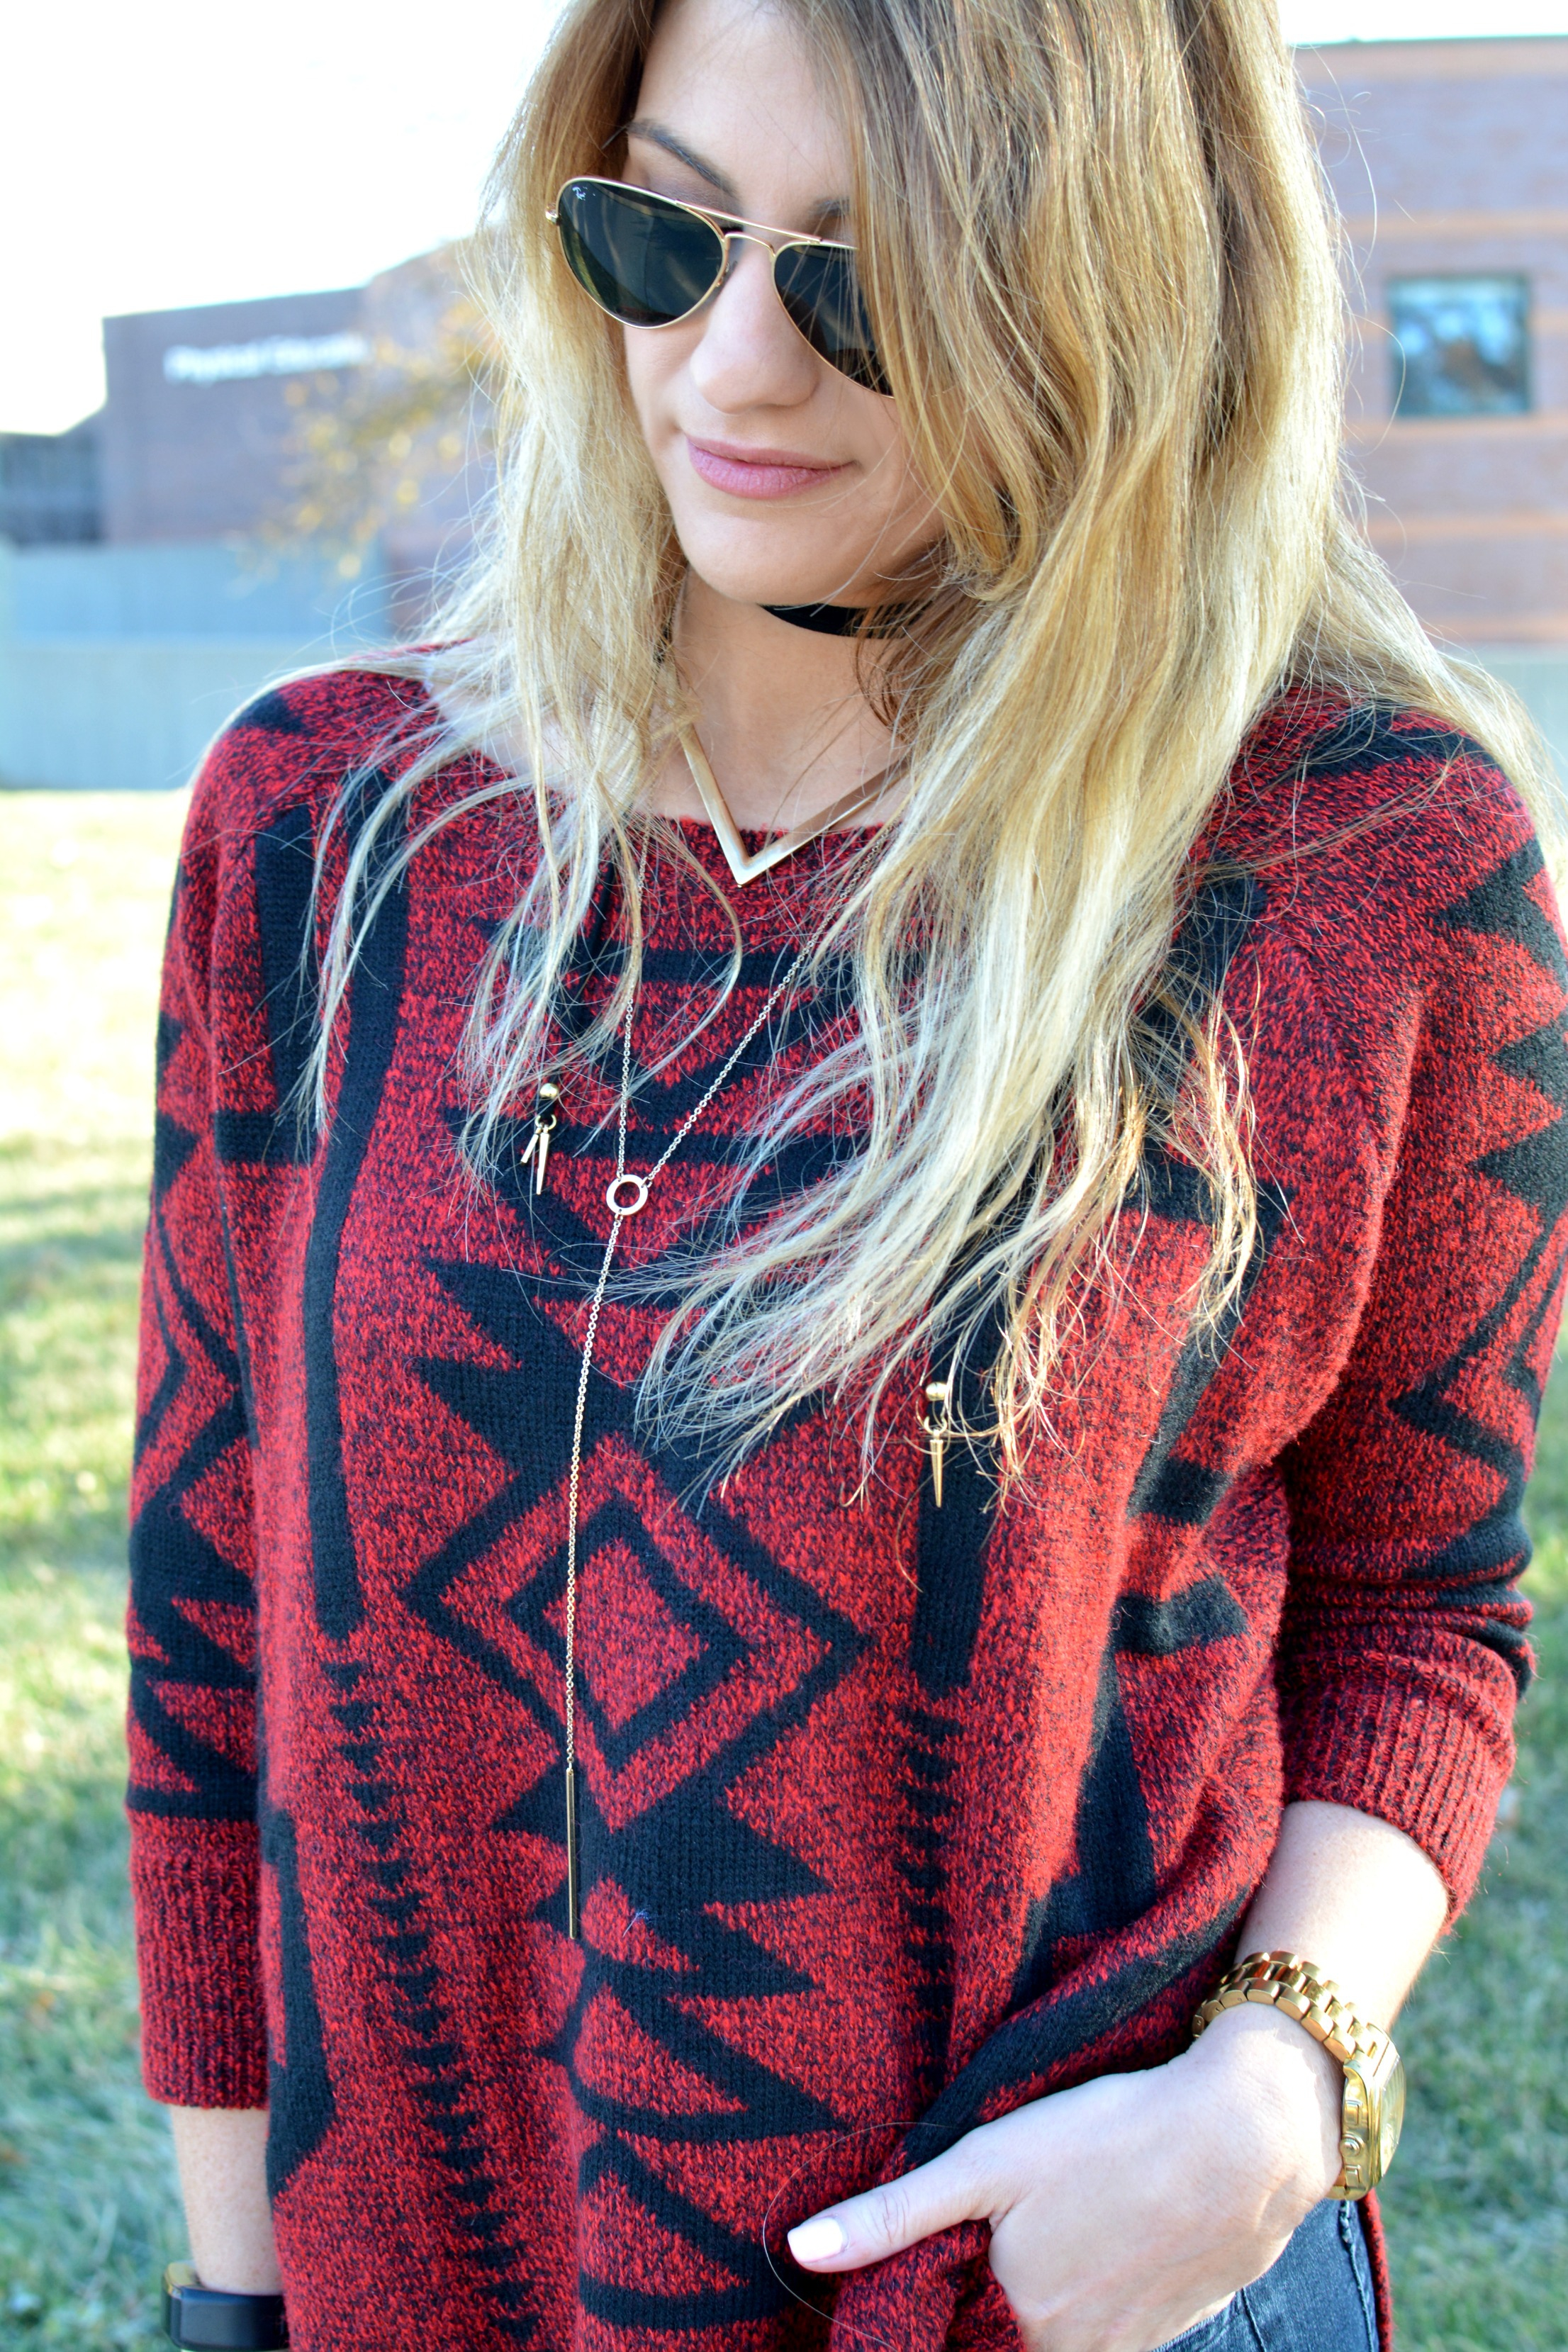 Ashley from LSR in a red and black sweater with a Vanessa Mooney choker